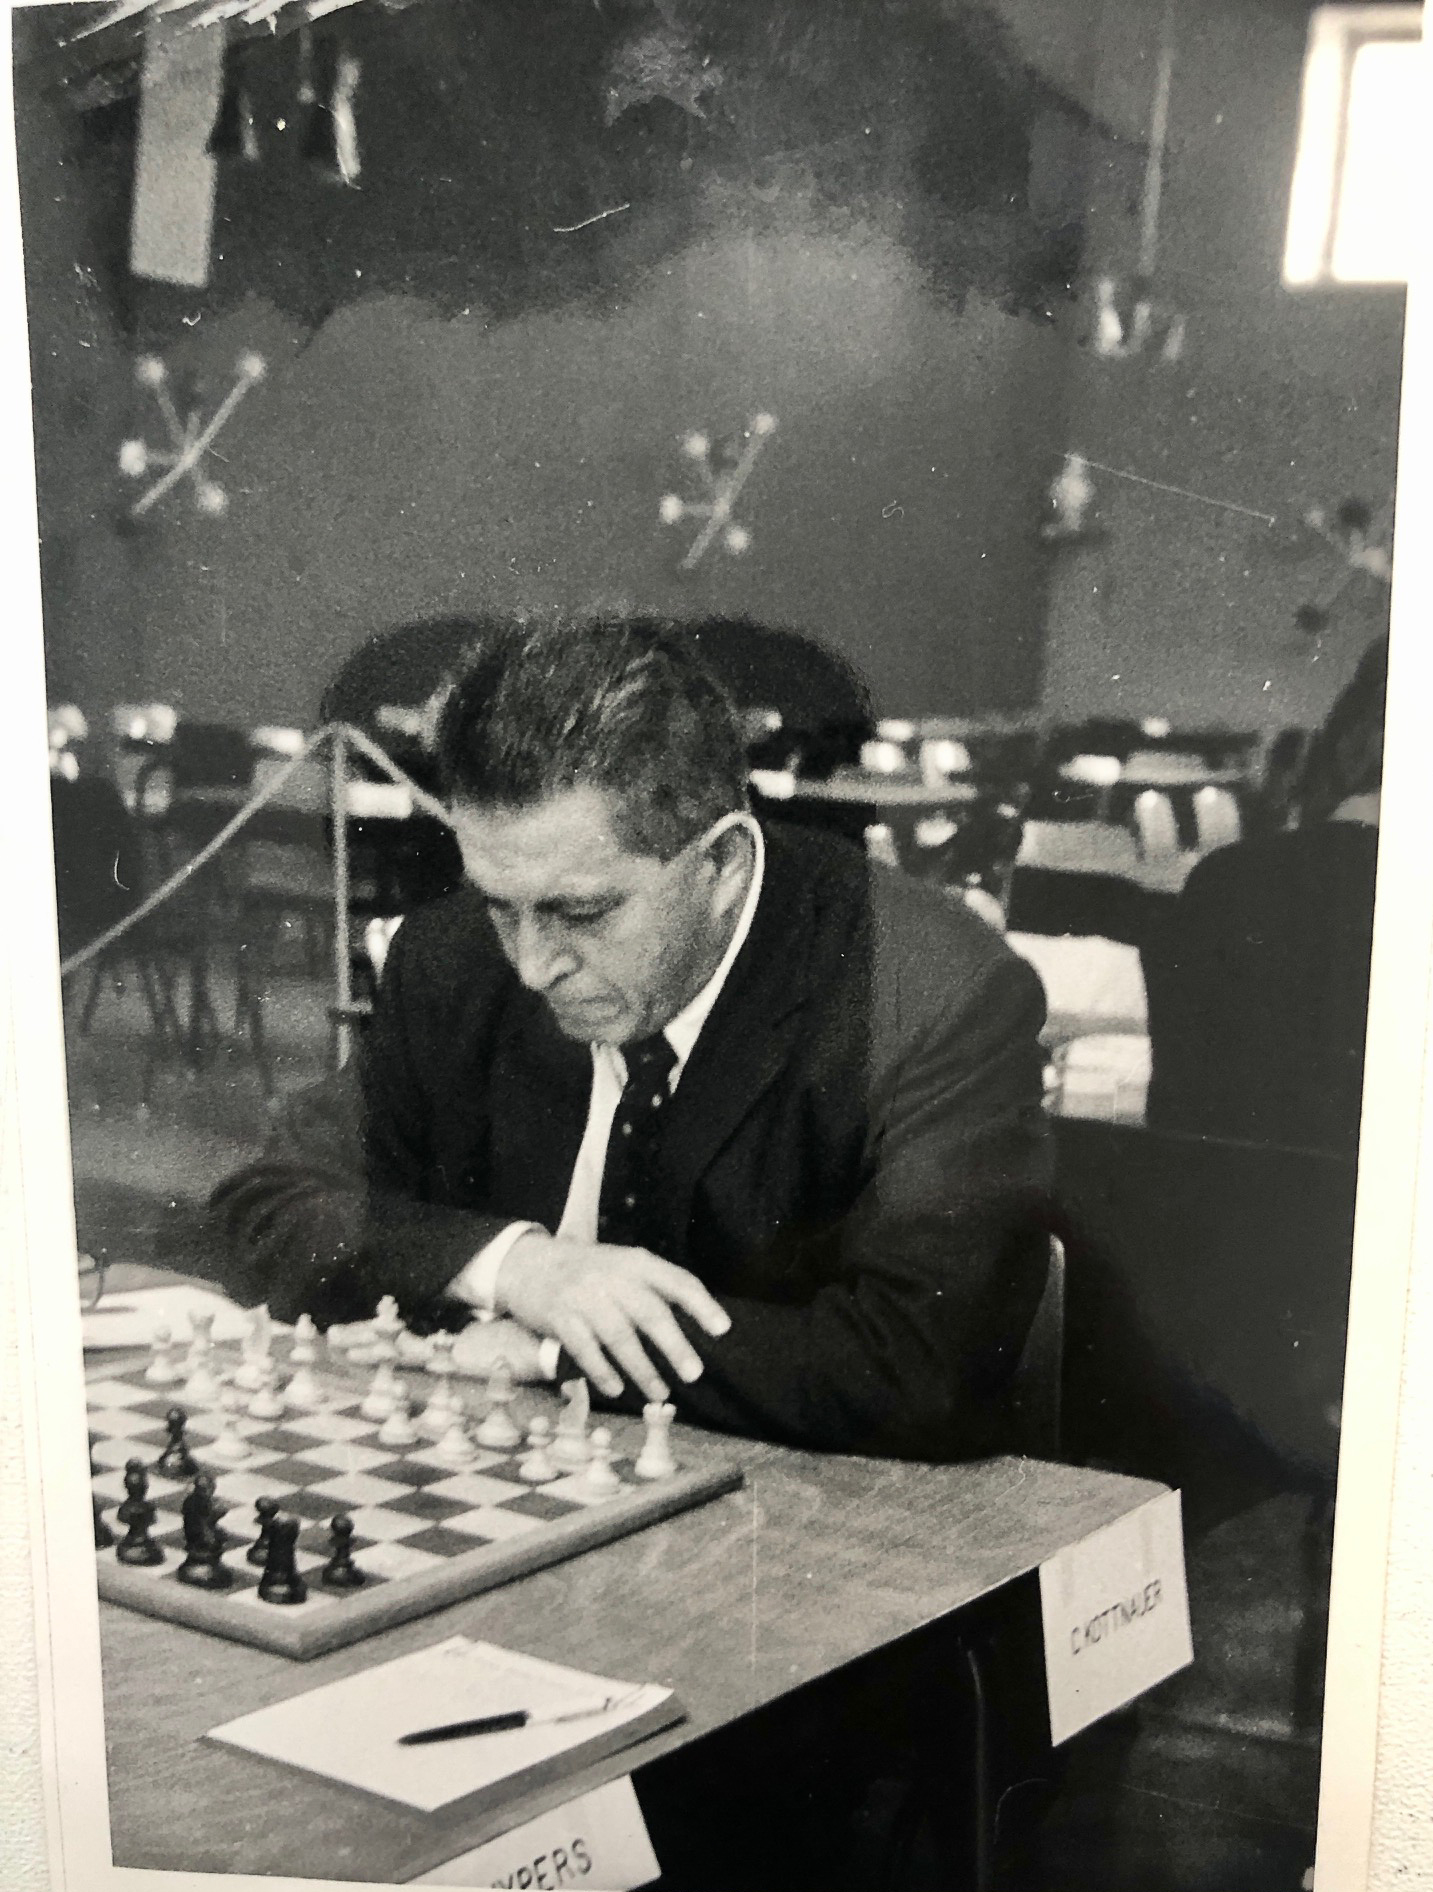 Čeněk Kottnauer plays Frans Kuijpers during the 1964 Anglo-Dutch match at Vlissingen on September 19th